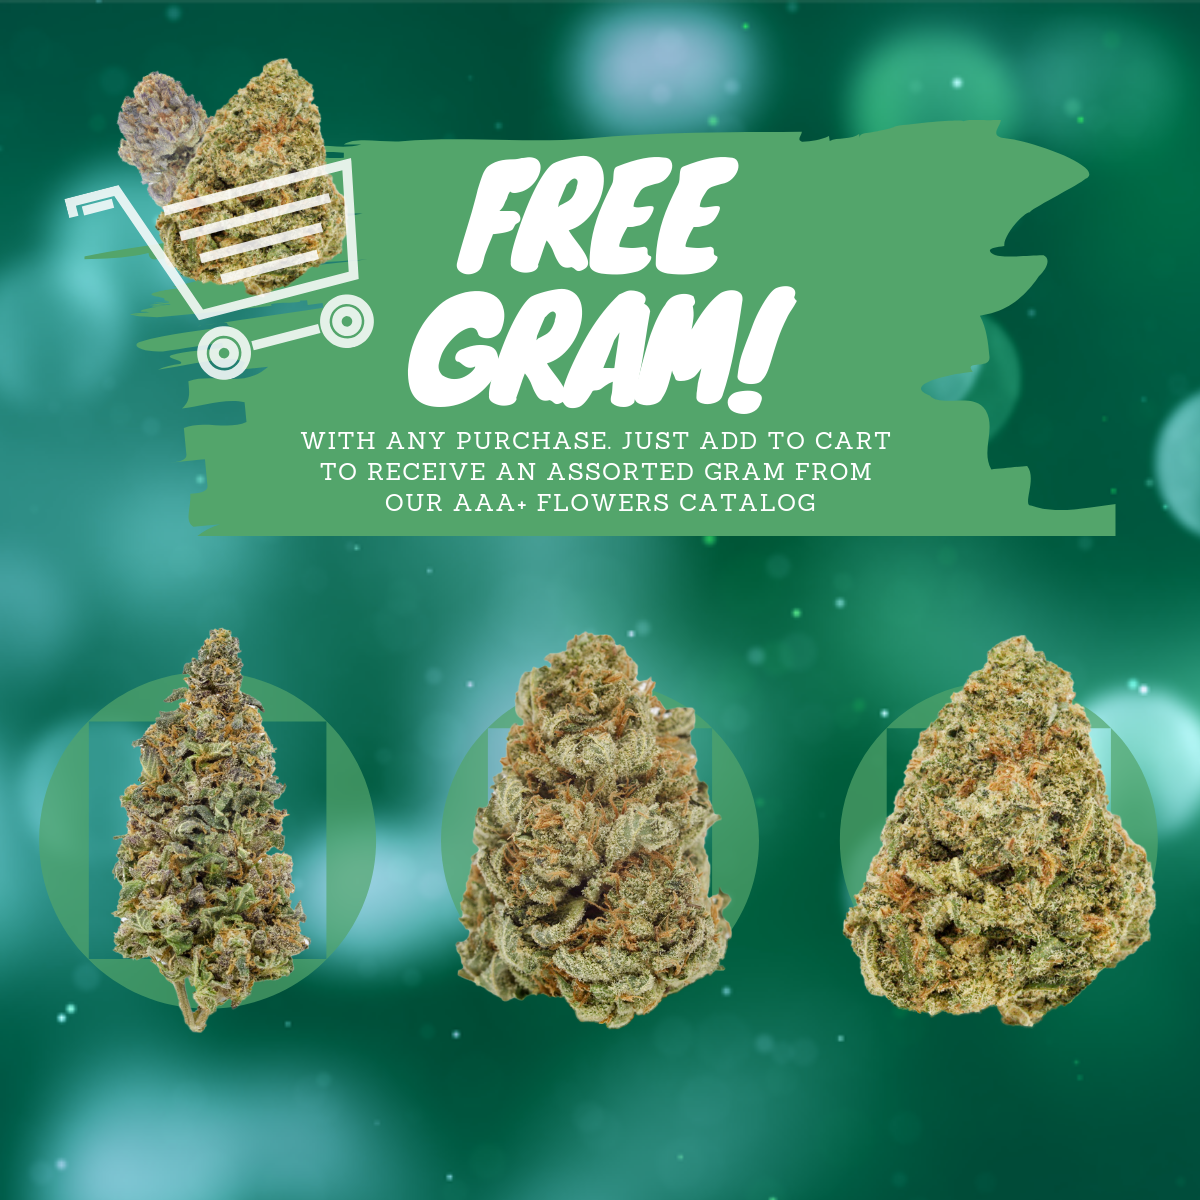 Assorted AAA+ Free Gram by Green Society - Image © 2018 Green Society. All Rights Reserved.